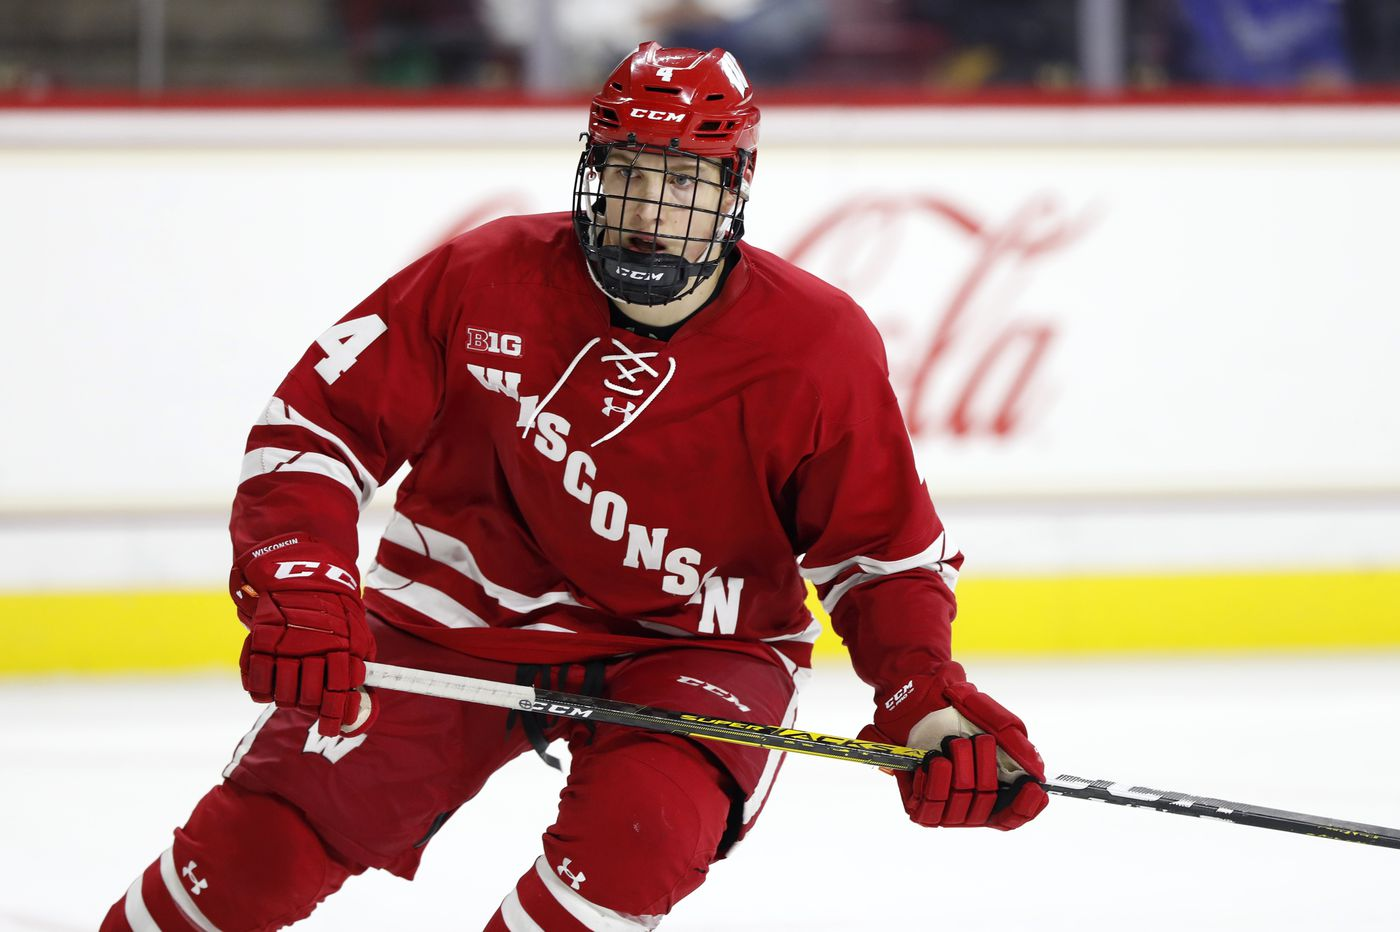 The Flyers are looking for a forward with the 23rd pick in the NHL draft. Here are some candidates.